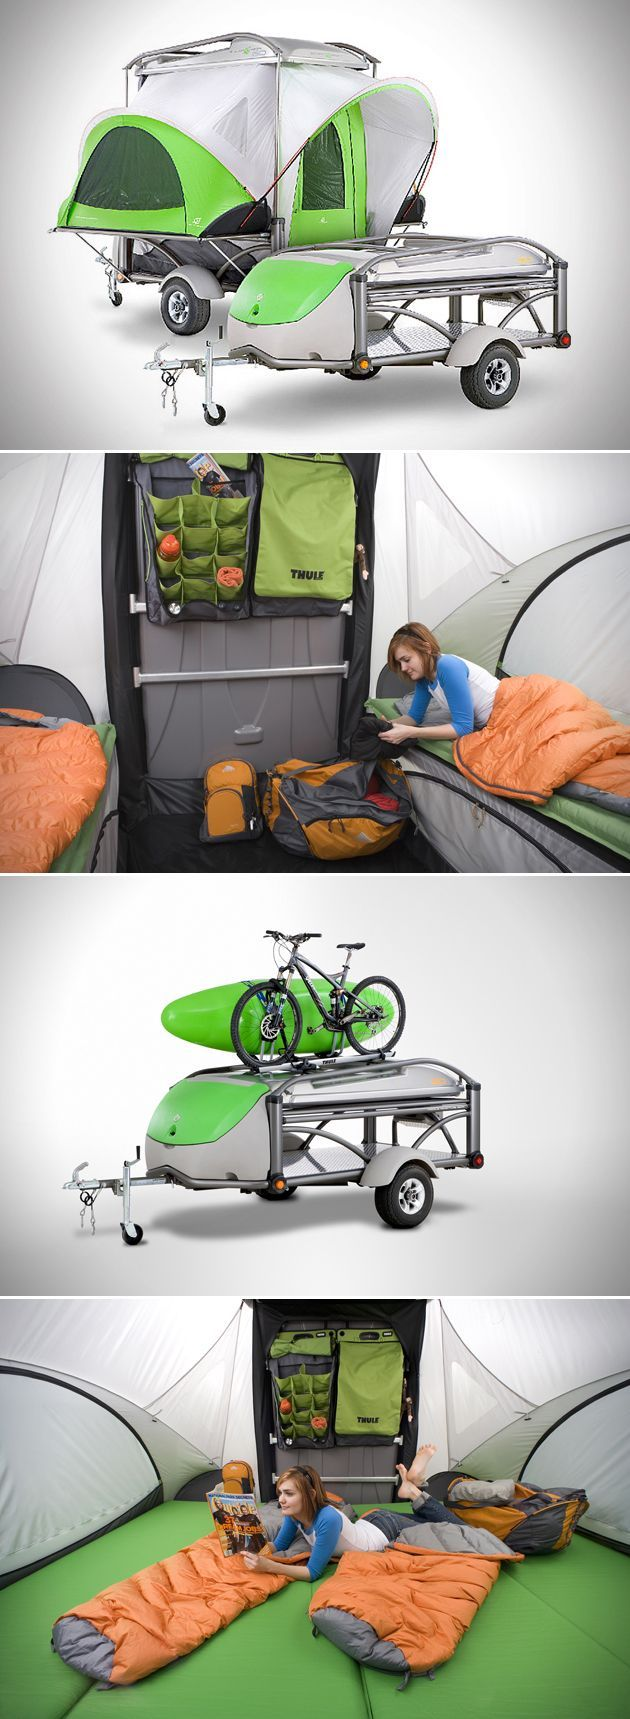 27 Travel Gadgets That Are Too Cool To Resist – Survival Guide